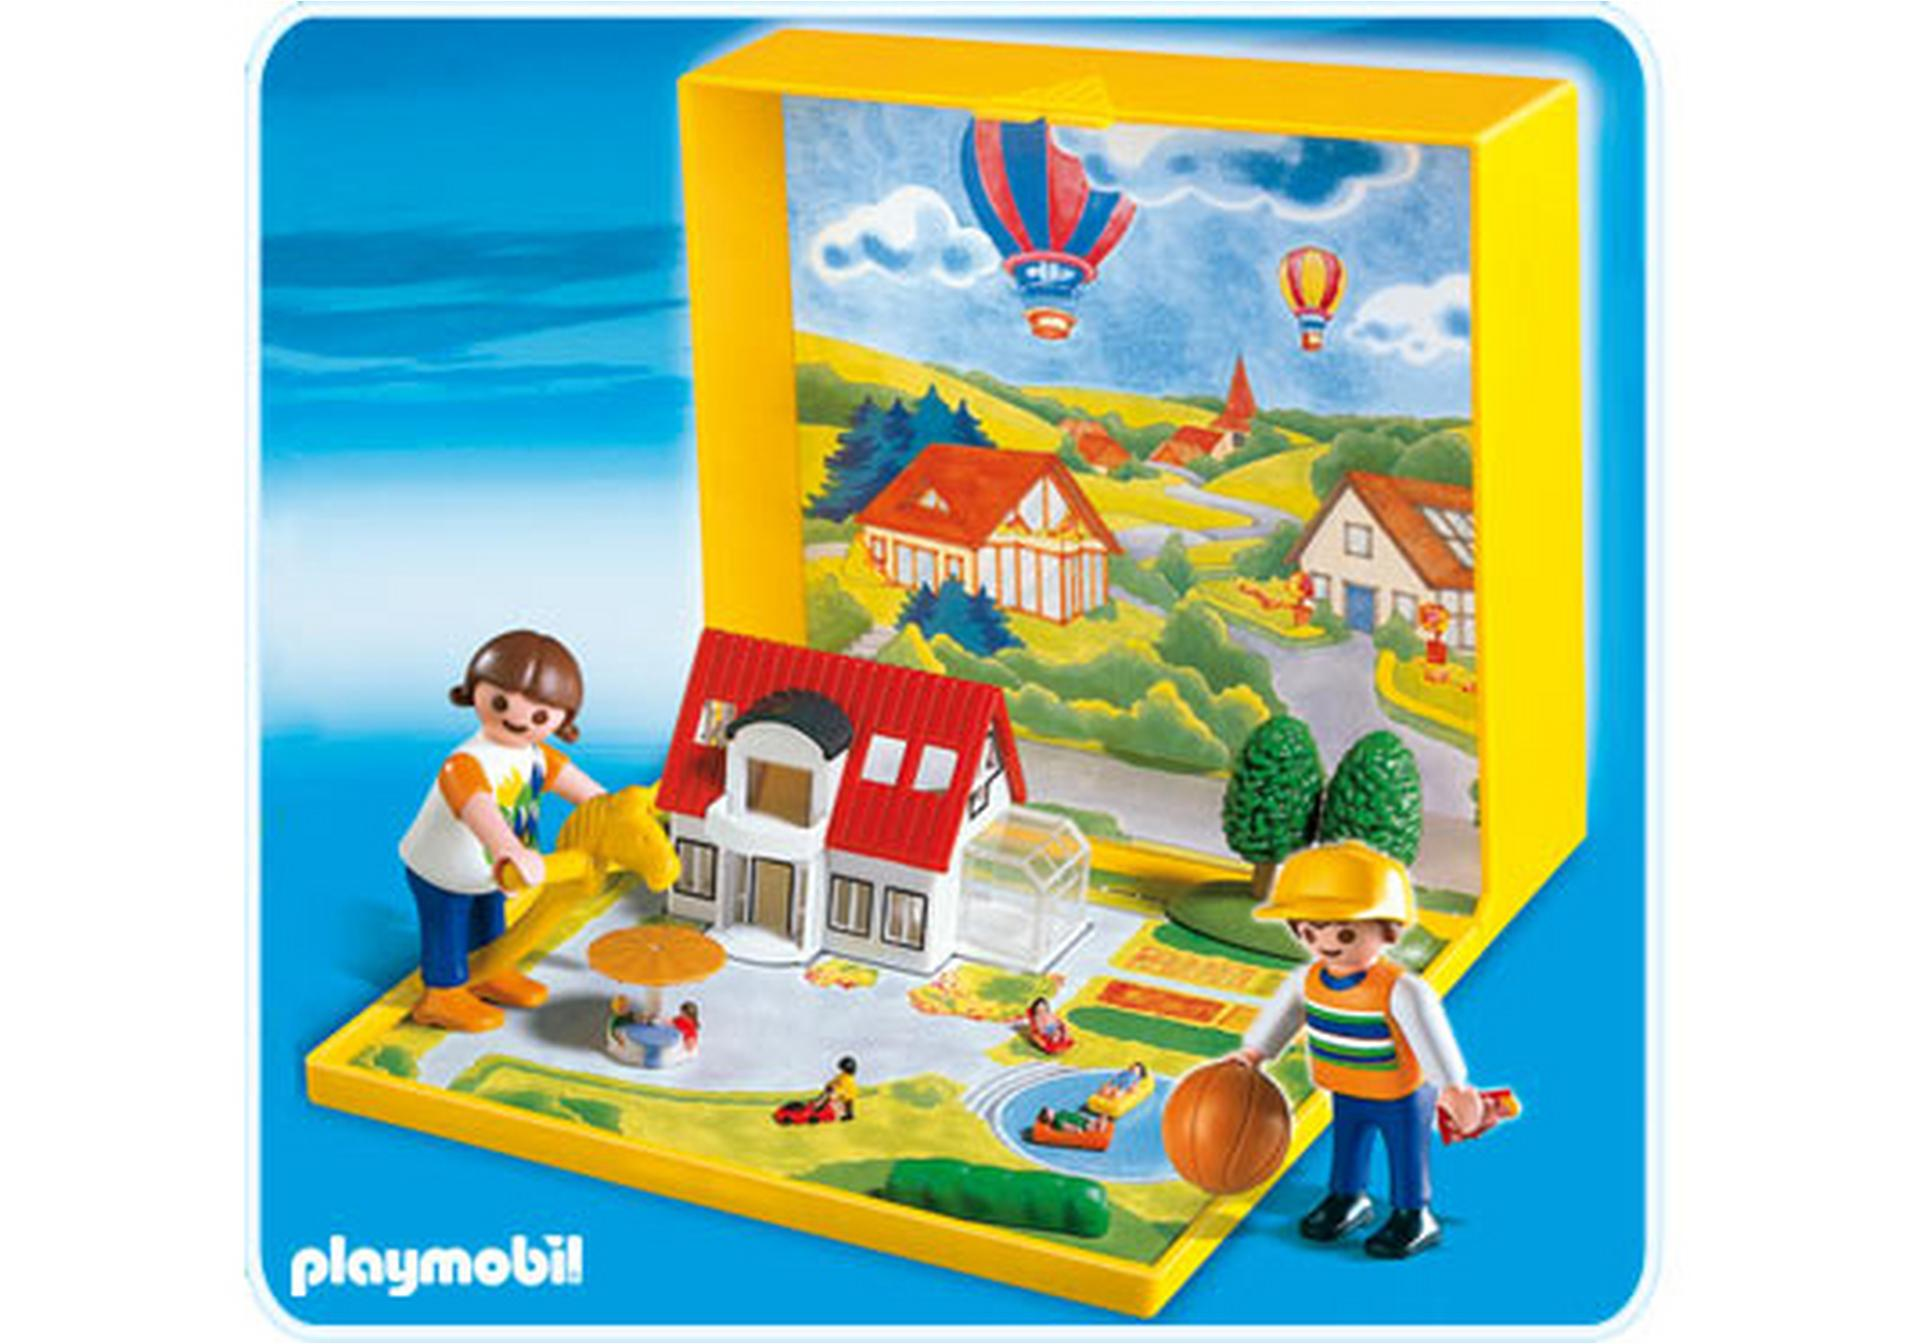 micro playmobil villa moderne 4335 a playmobil france. Black Bedroom Furniture Sets. Home Design Ideas